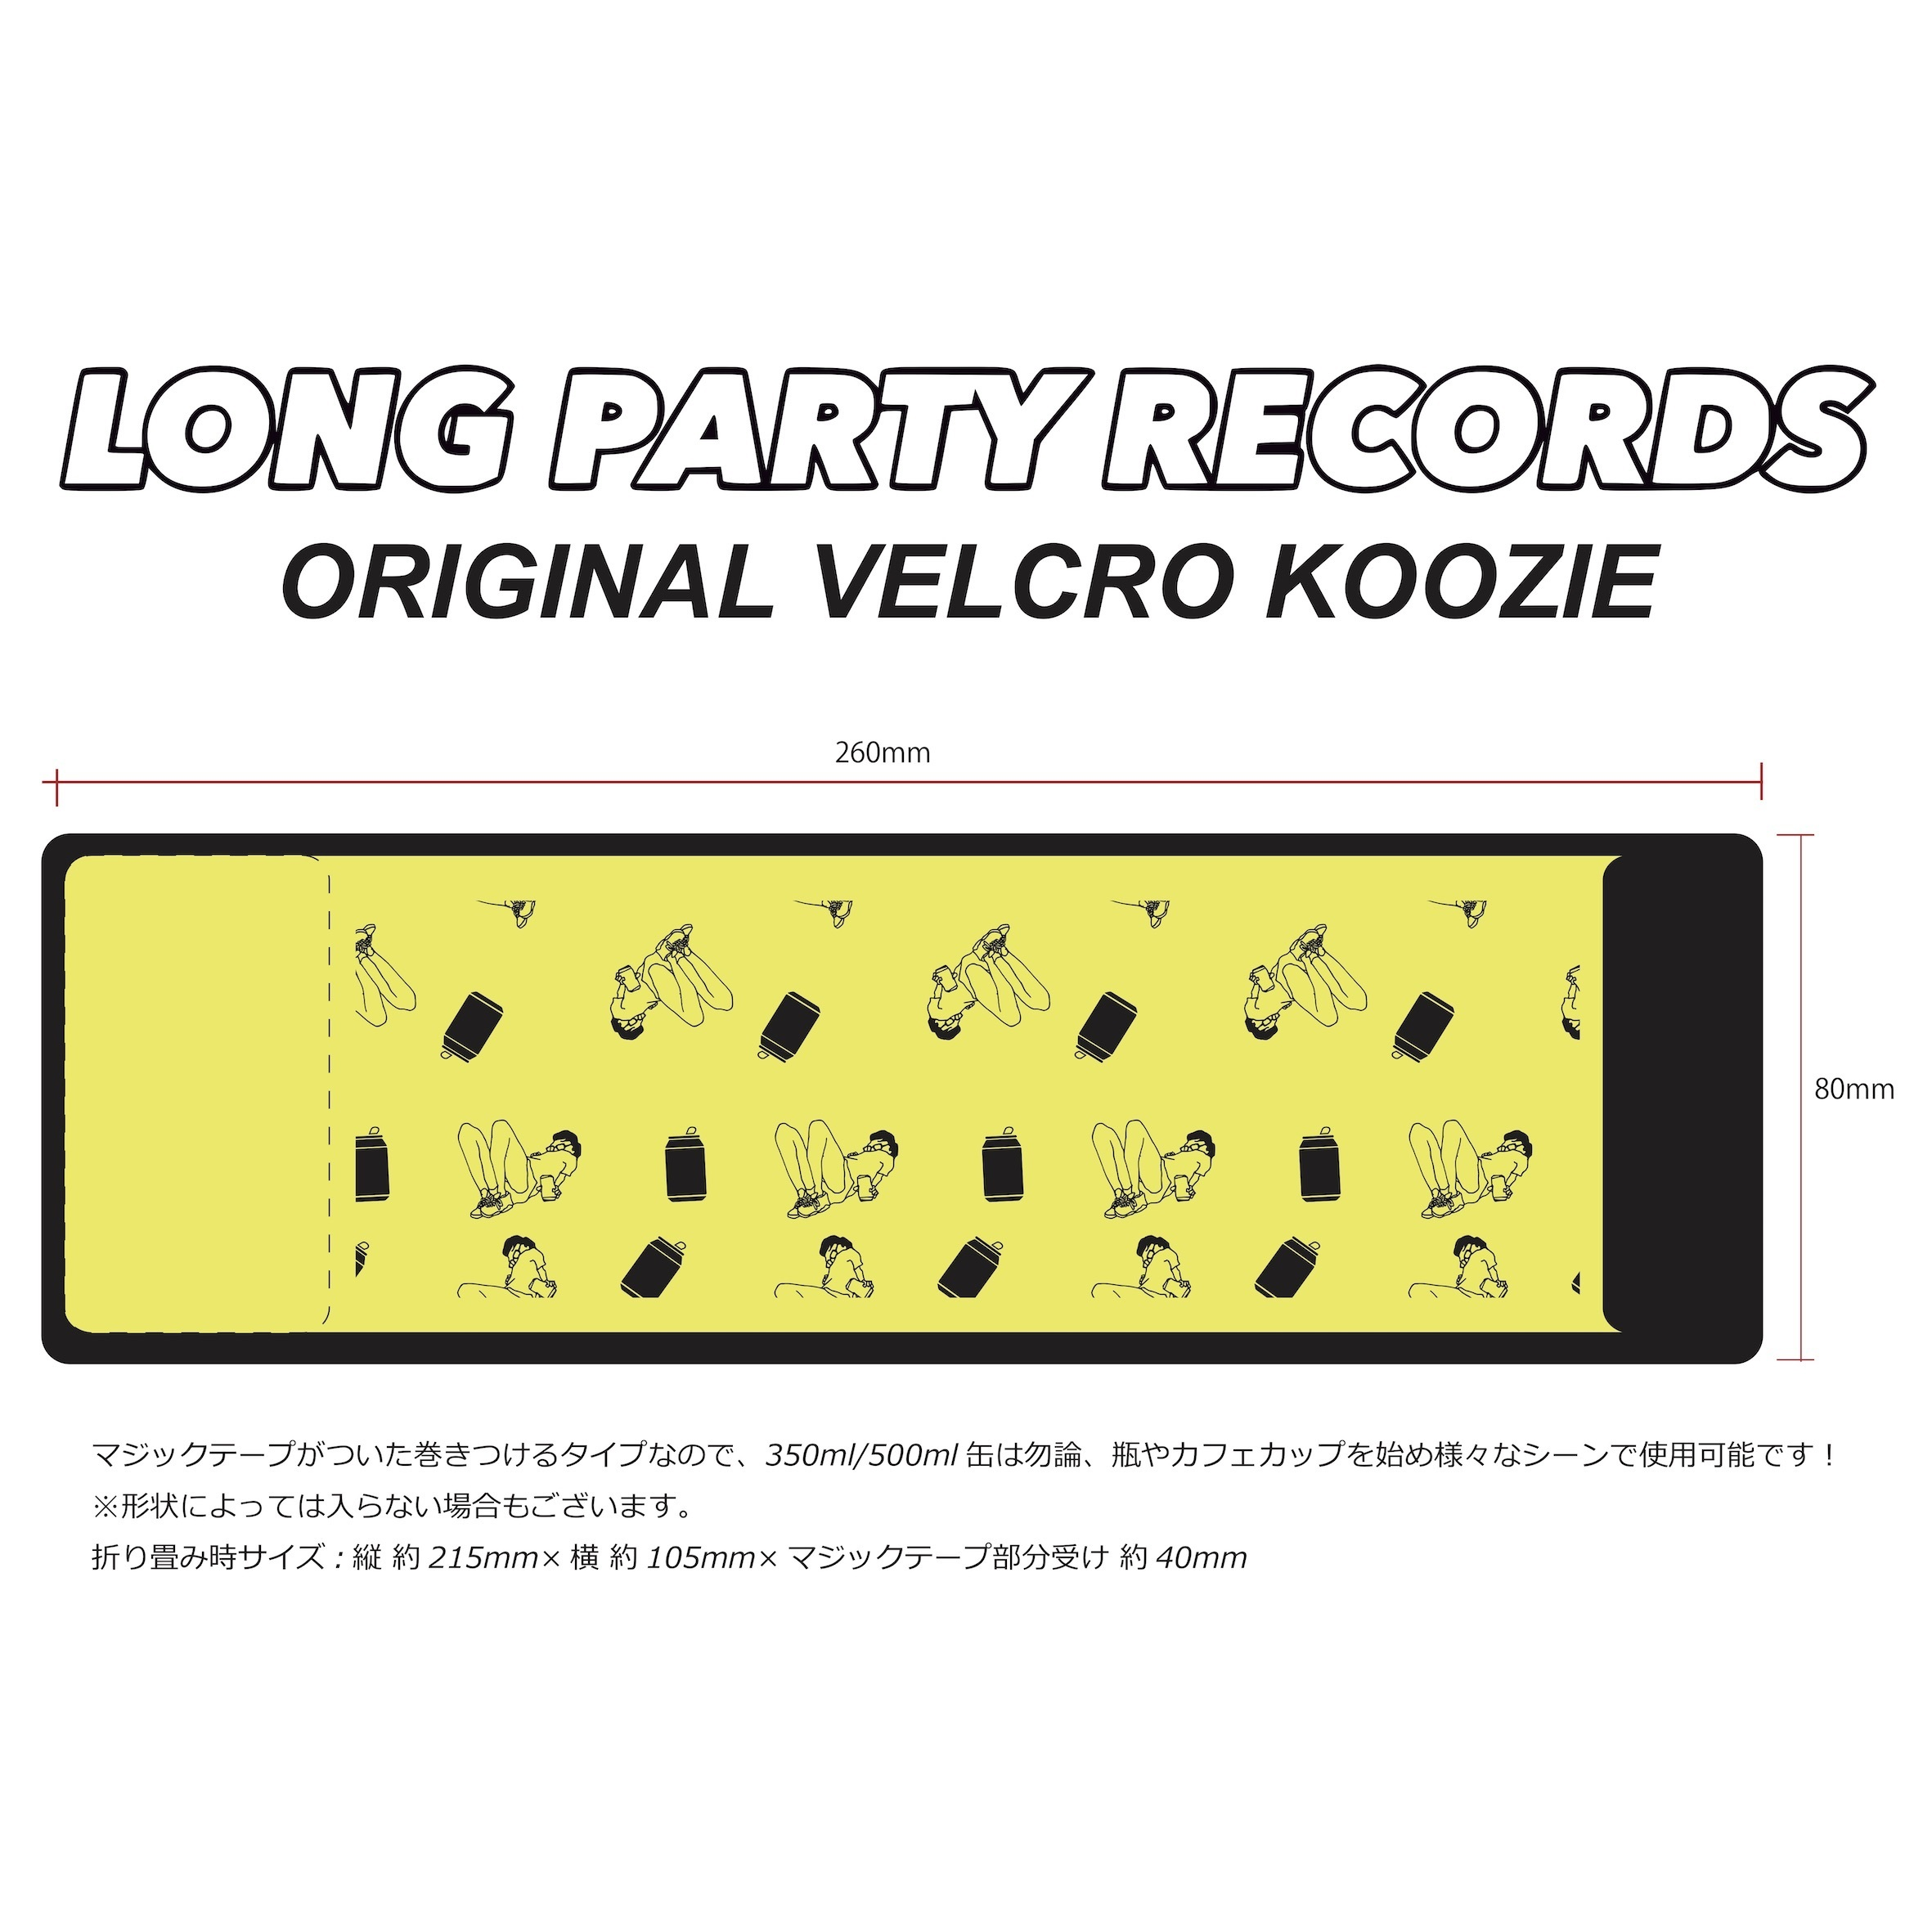 LONG PARTY RECORDS ORIGINAL VELCRO KOOZIE